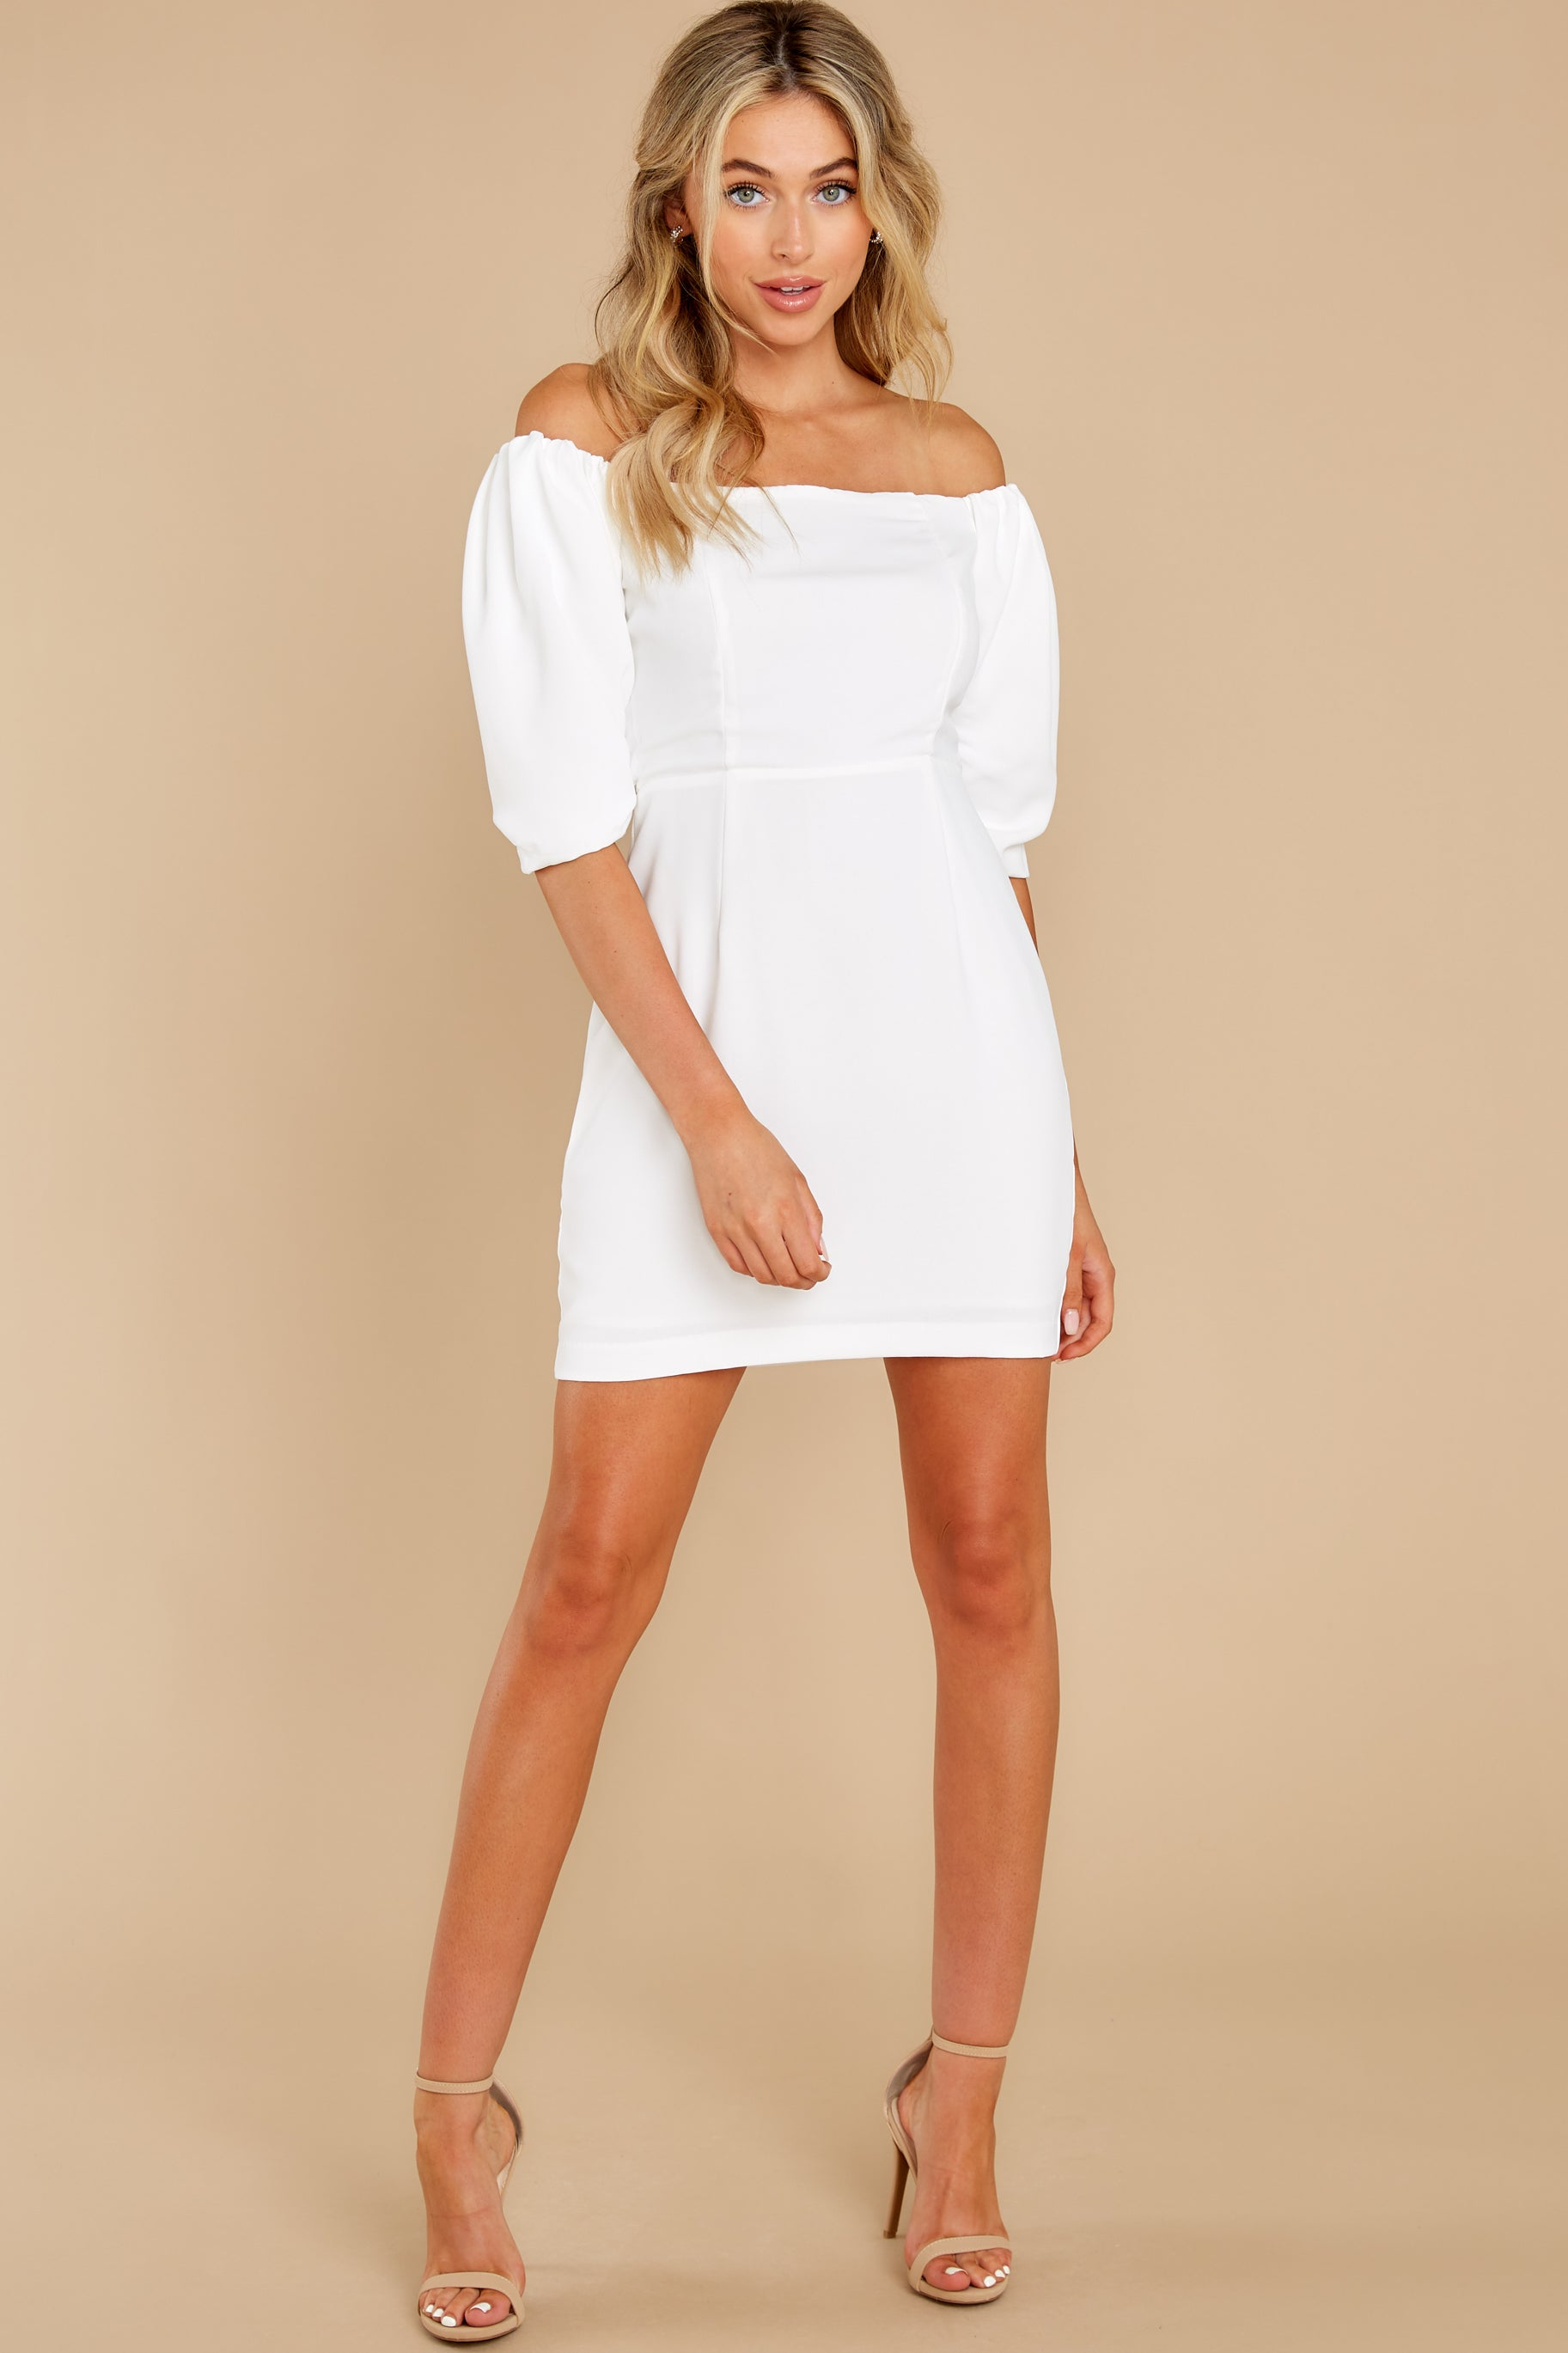 2 Lofty Ambitions White Off The Shoulder Dress at reddress.com